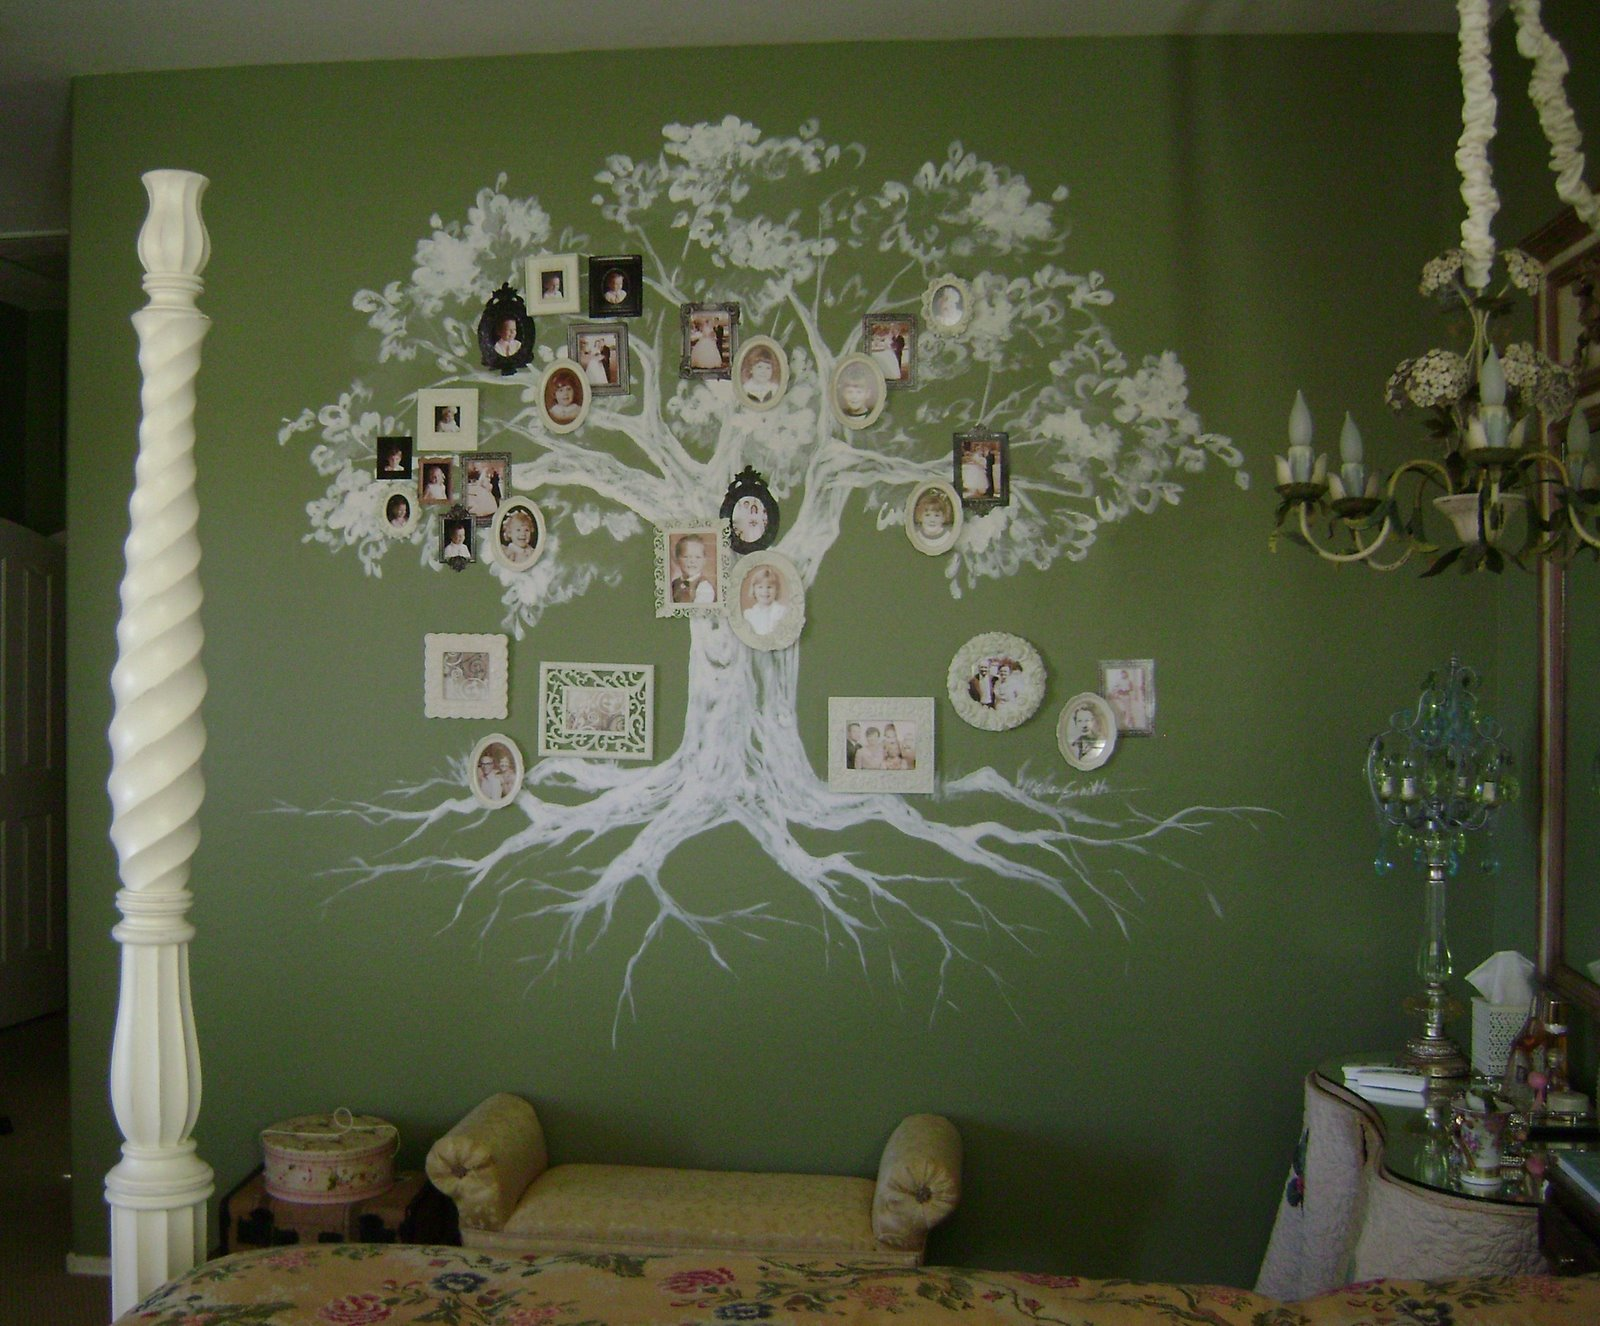 Wall Family Tree Image